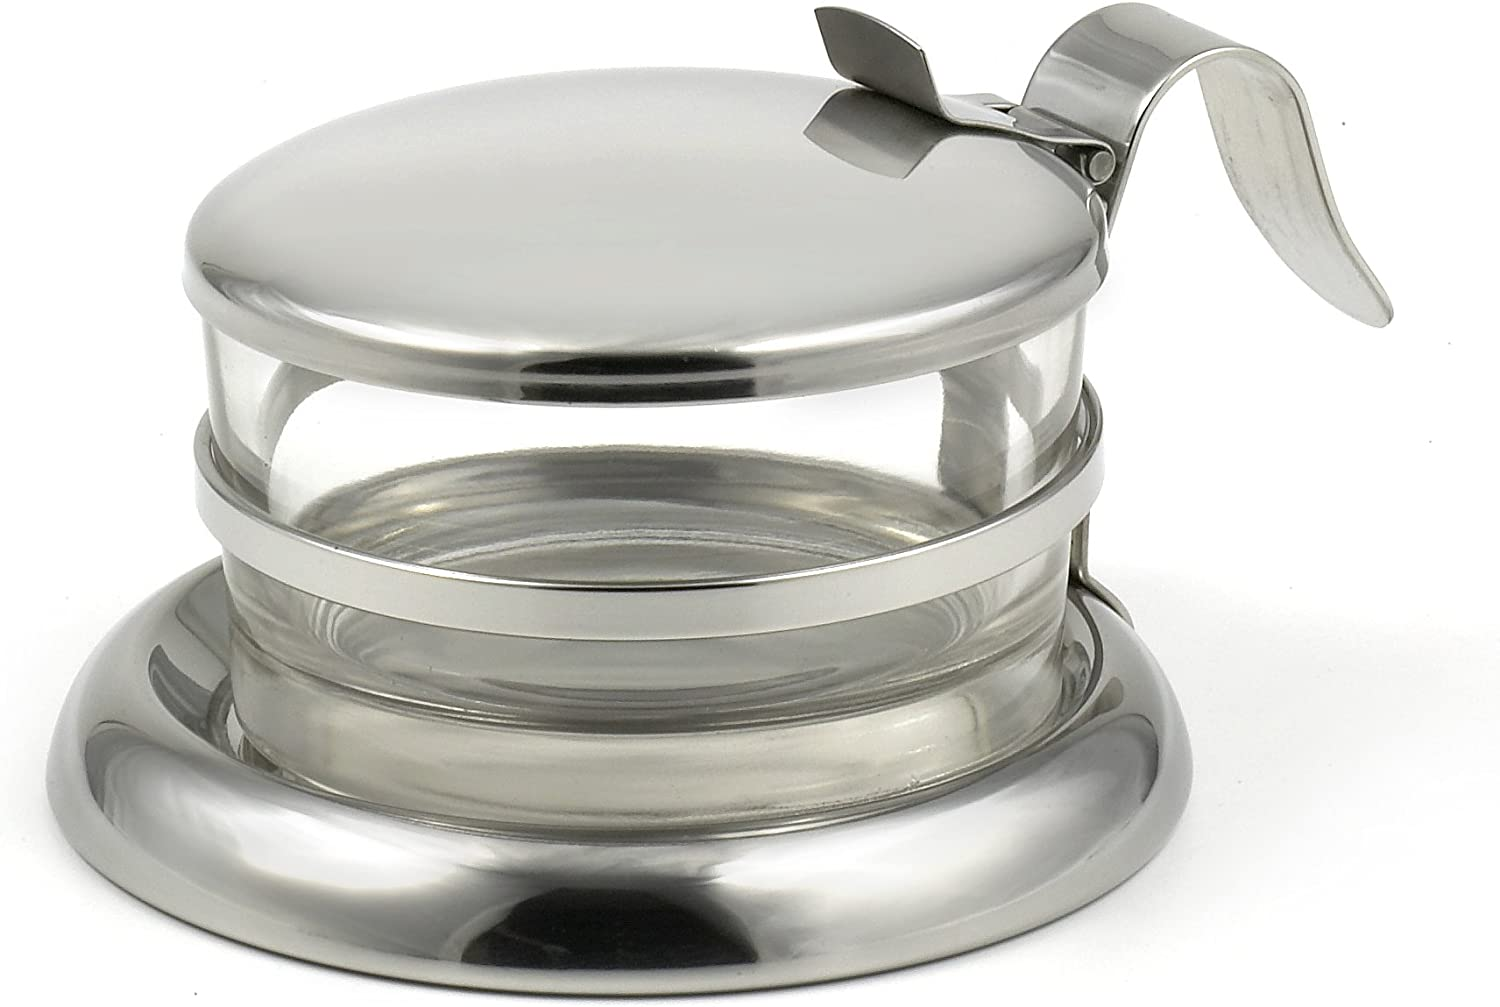 StainlessLUX 73444 Brilliant Stainless Steel Salt Server/Cheese Bowl/Condiment Glass Serving Bowl - Quality Serveware for Your Kitchen